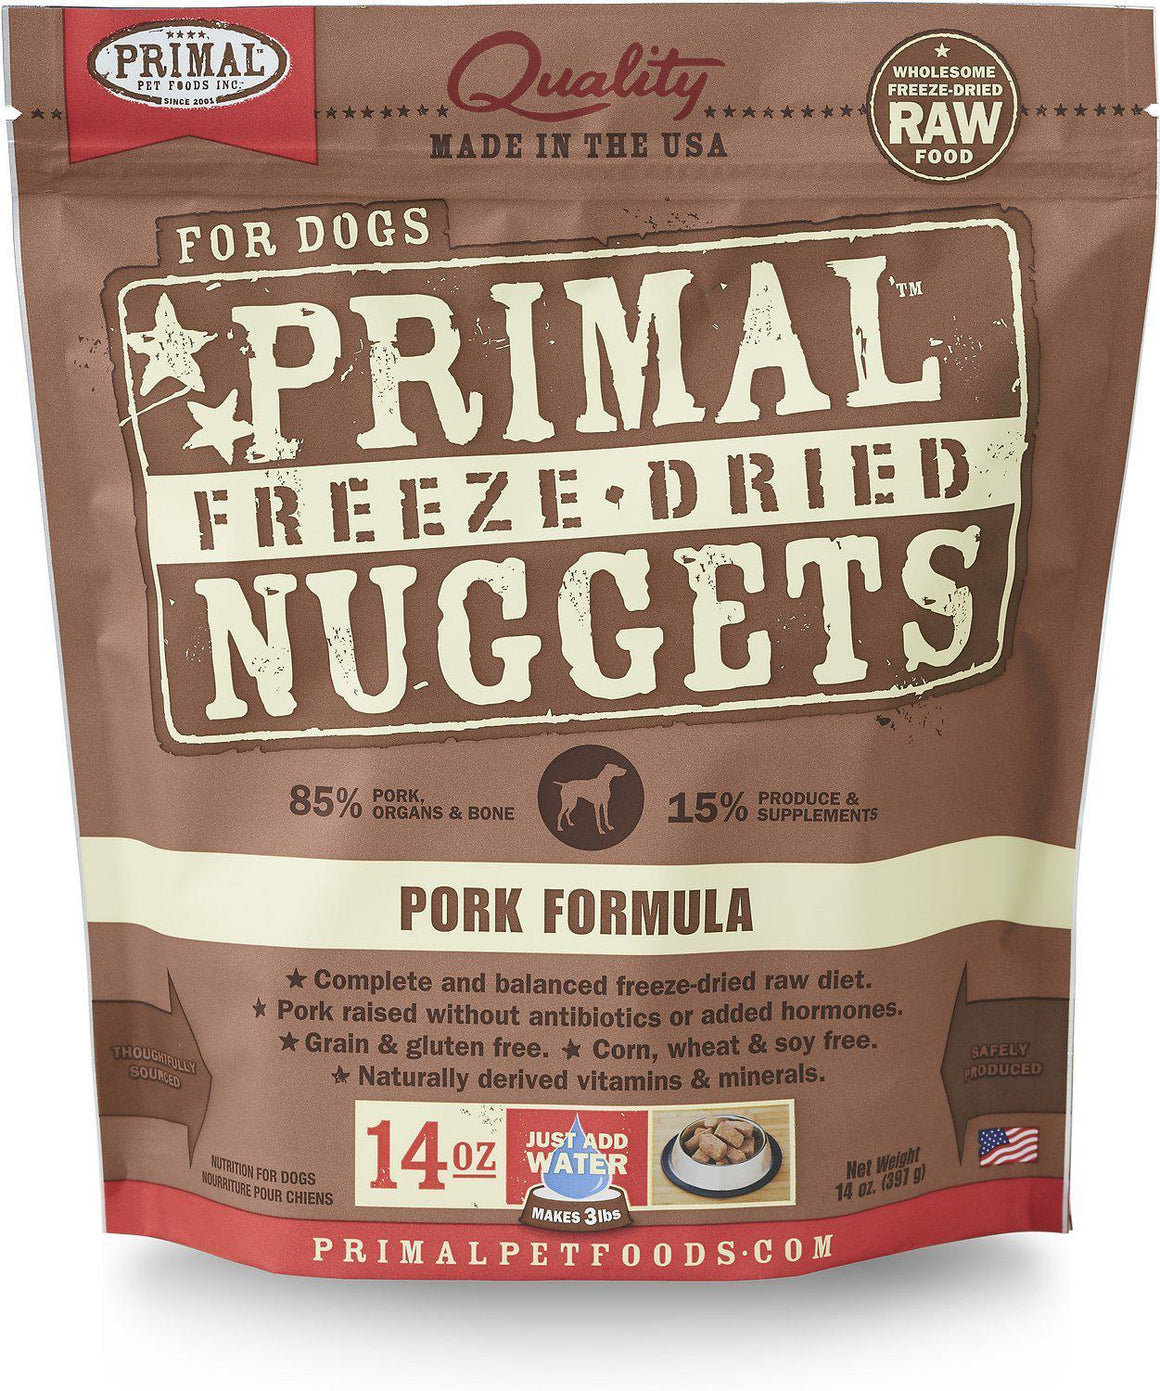 Primal Pork Formula Grain-Free Freeze-Dried Raw Nuggets Dog Food-Le Pup Pet Supplies and Grooming